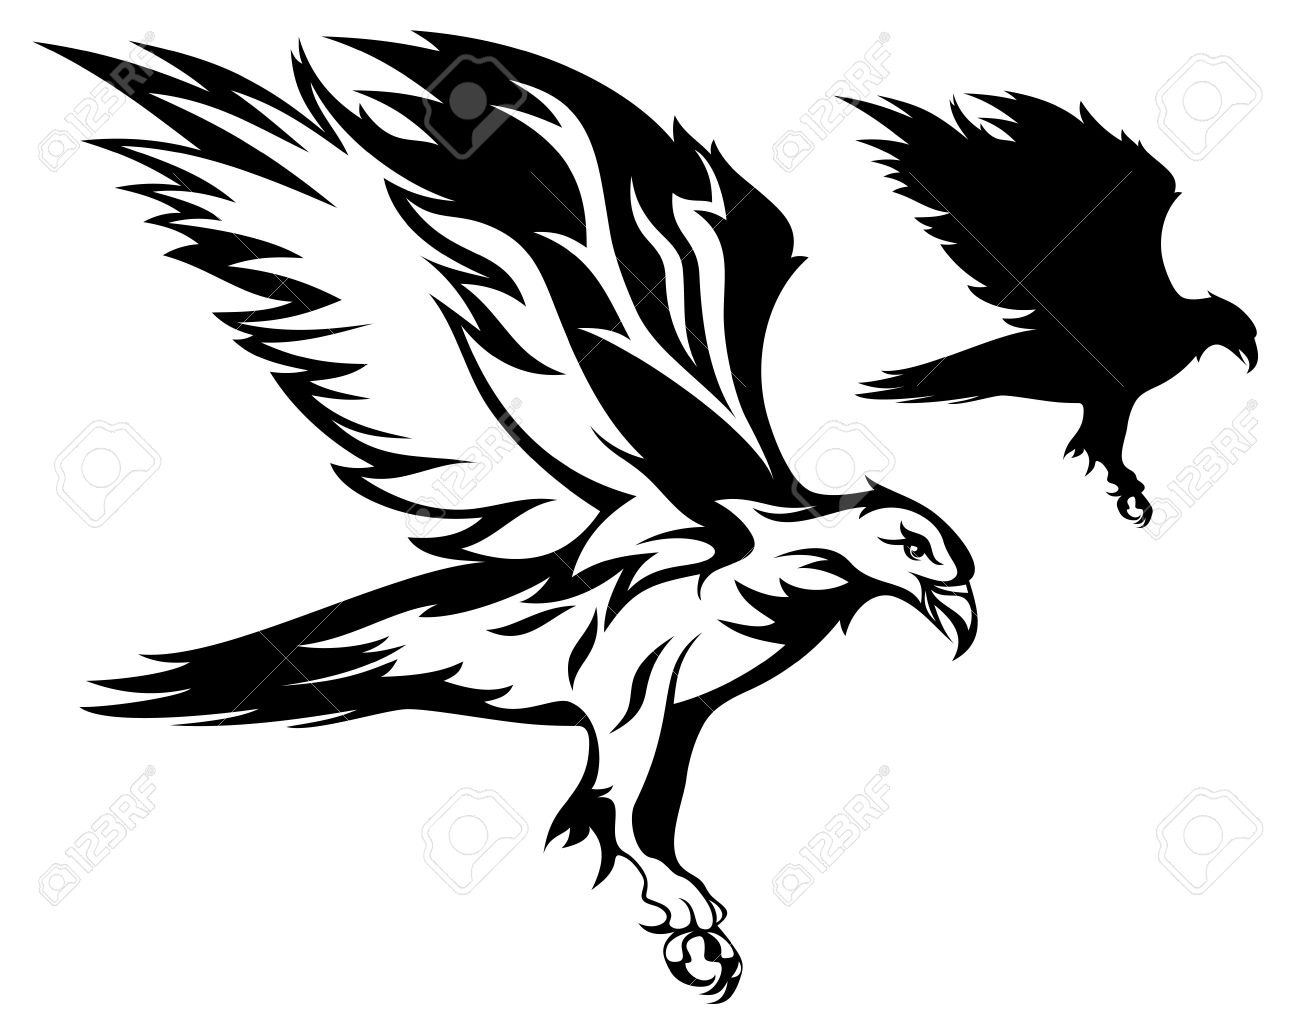 Raven Flying Drawing At Getdrawings